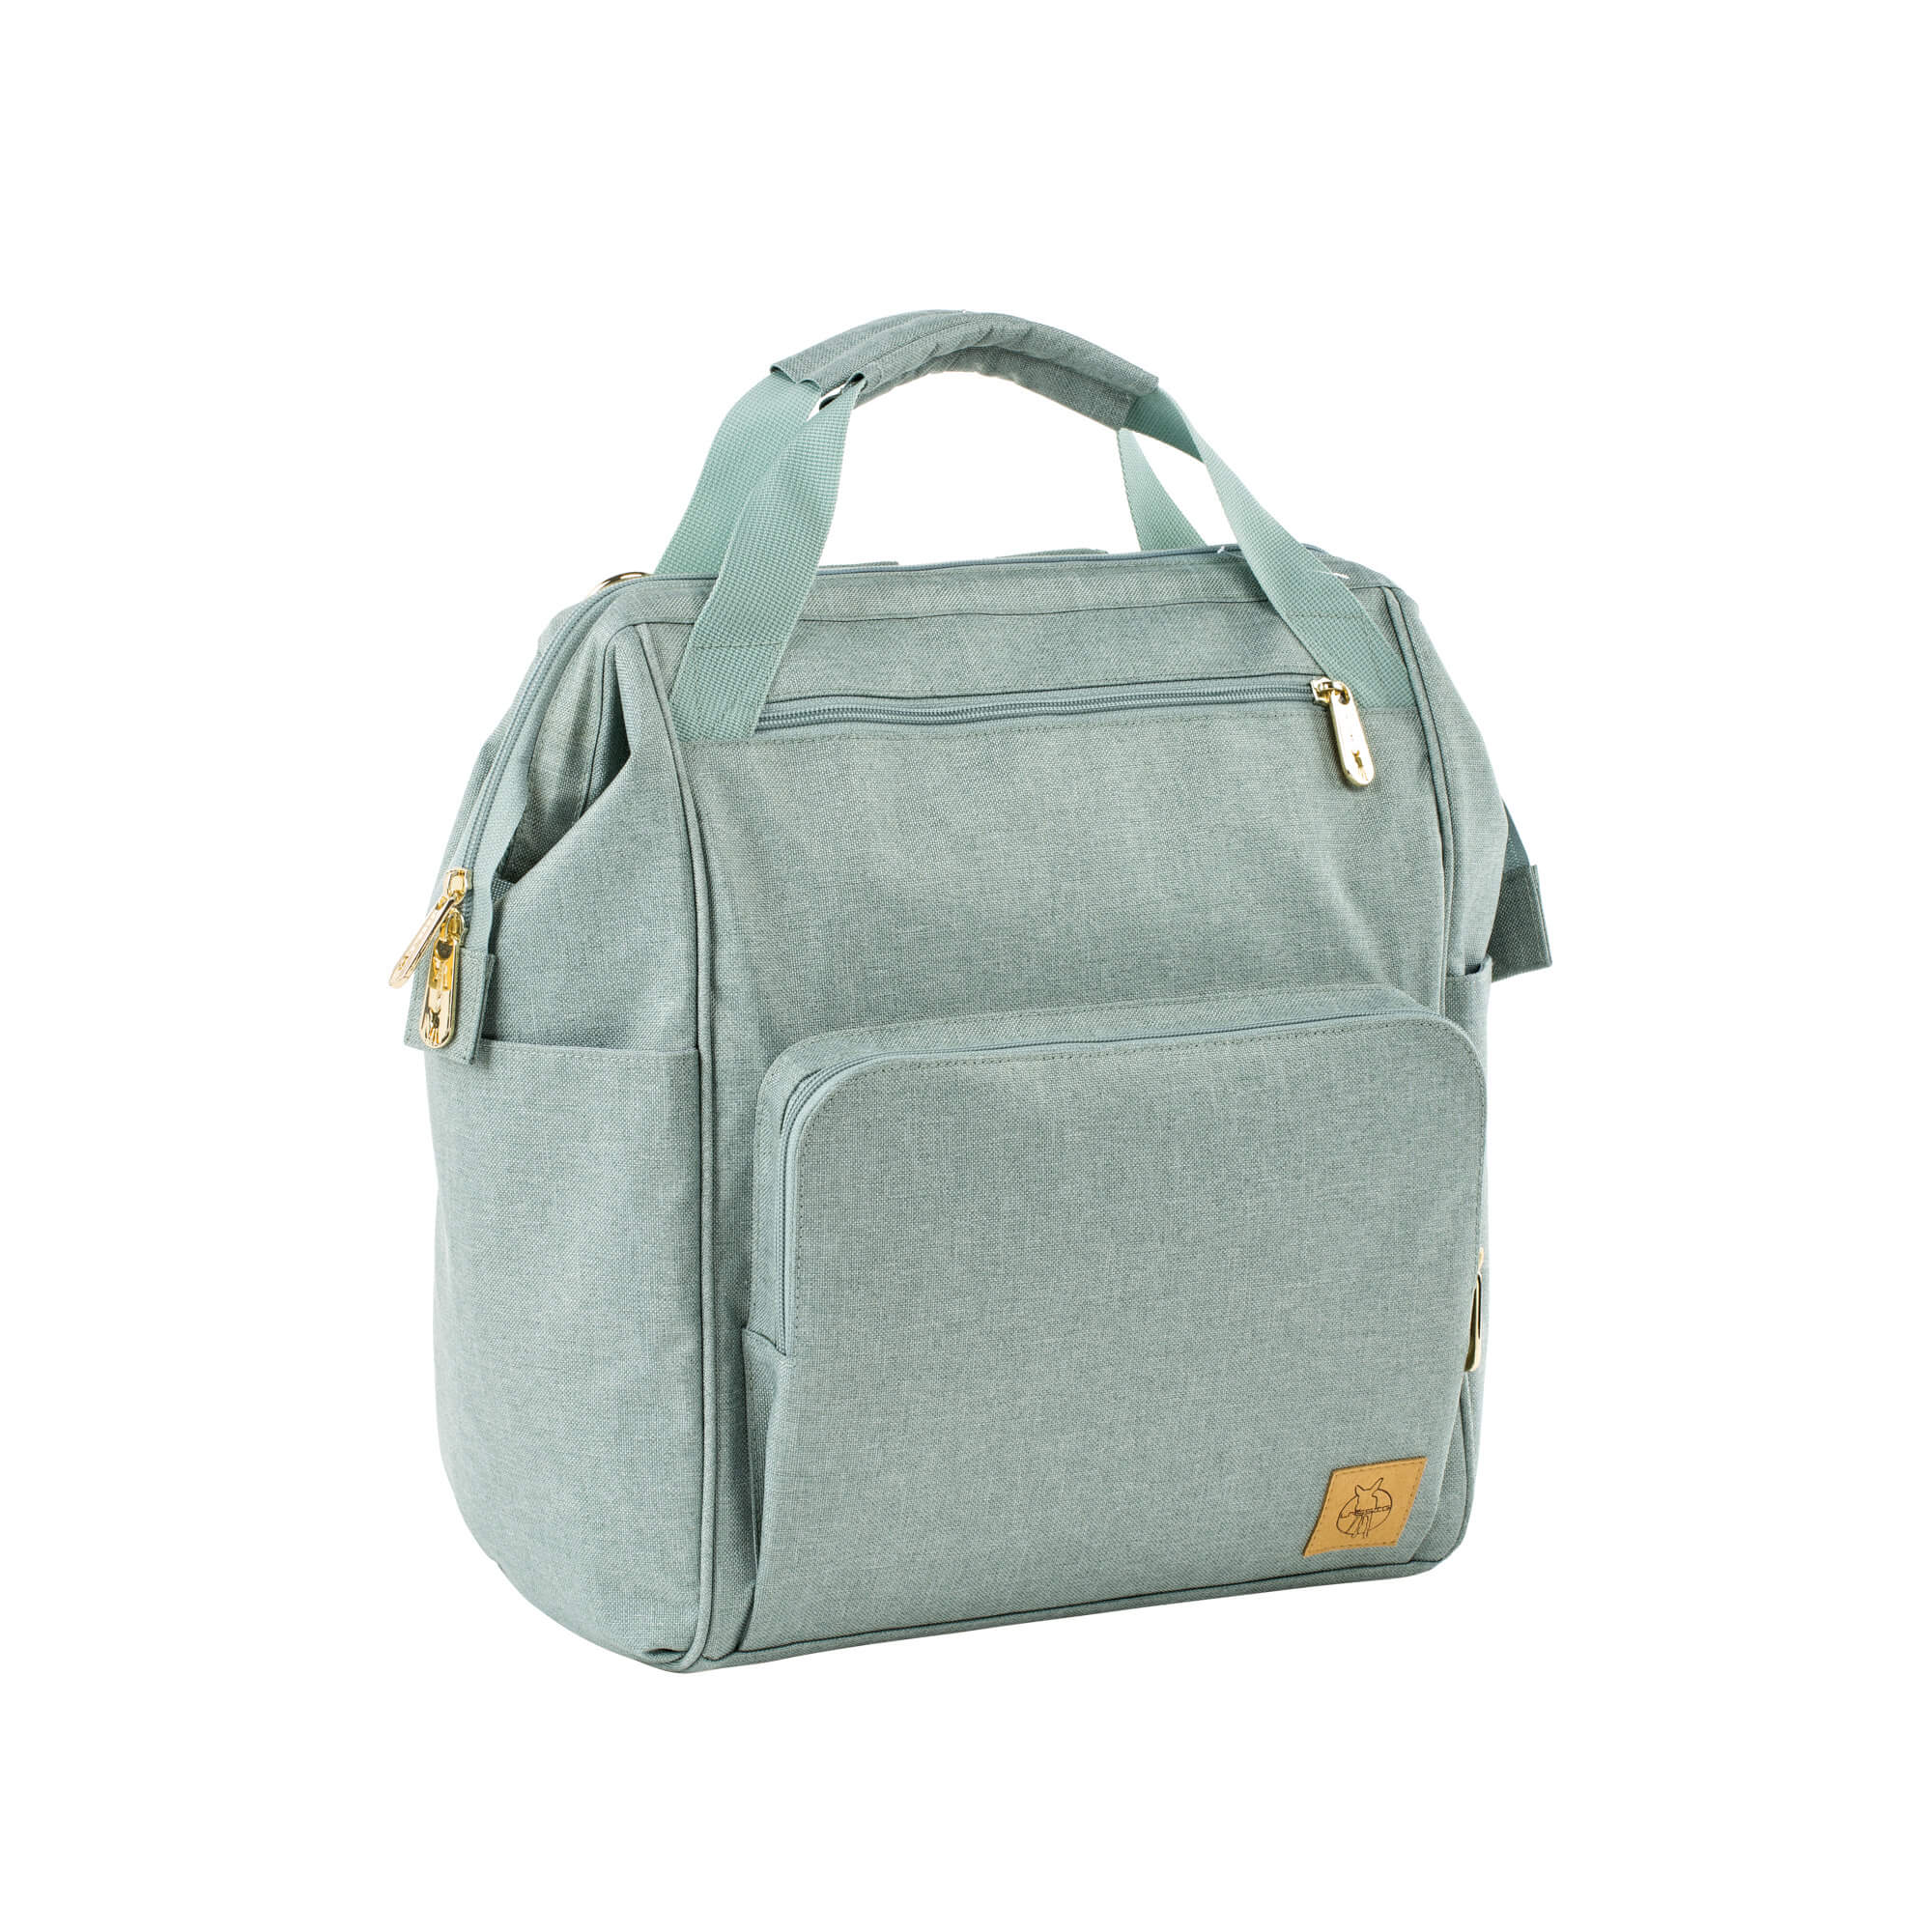 Bolso mochila Goldie Diaper Backpack de Lassig